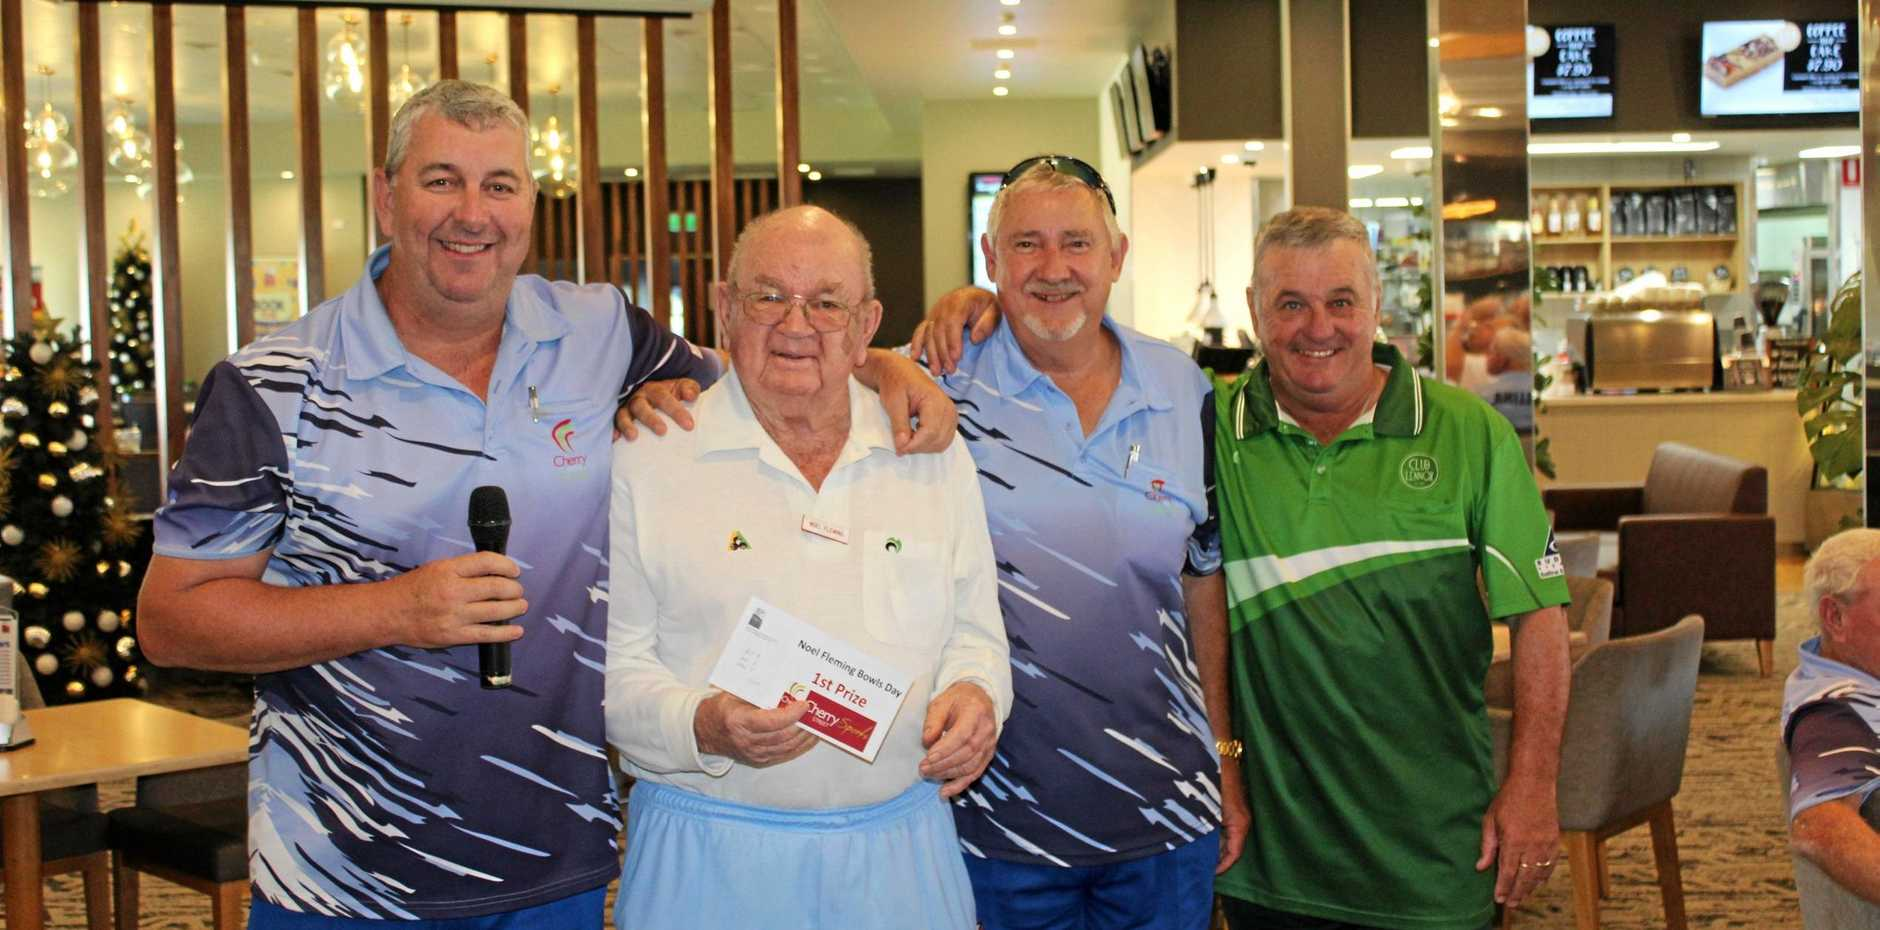 WINNERS ARE GRINNERS: The winners of the annual Flemmos Day bowls competition from left Alf Boston, Noel Flemming, Neil Burgess and Craig Teys. The fellows are busy preparing for the next big bowls event at Ballina - prestigious Summerland singles.